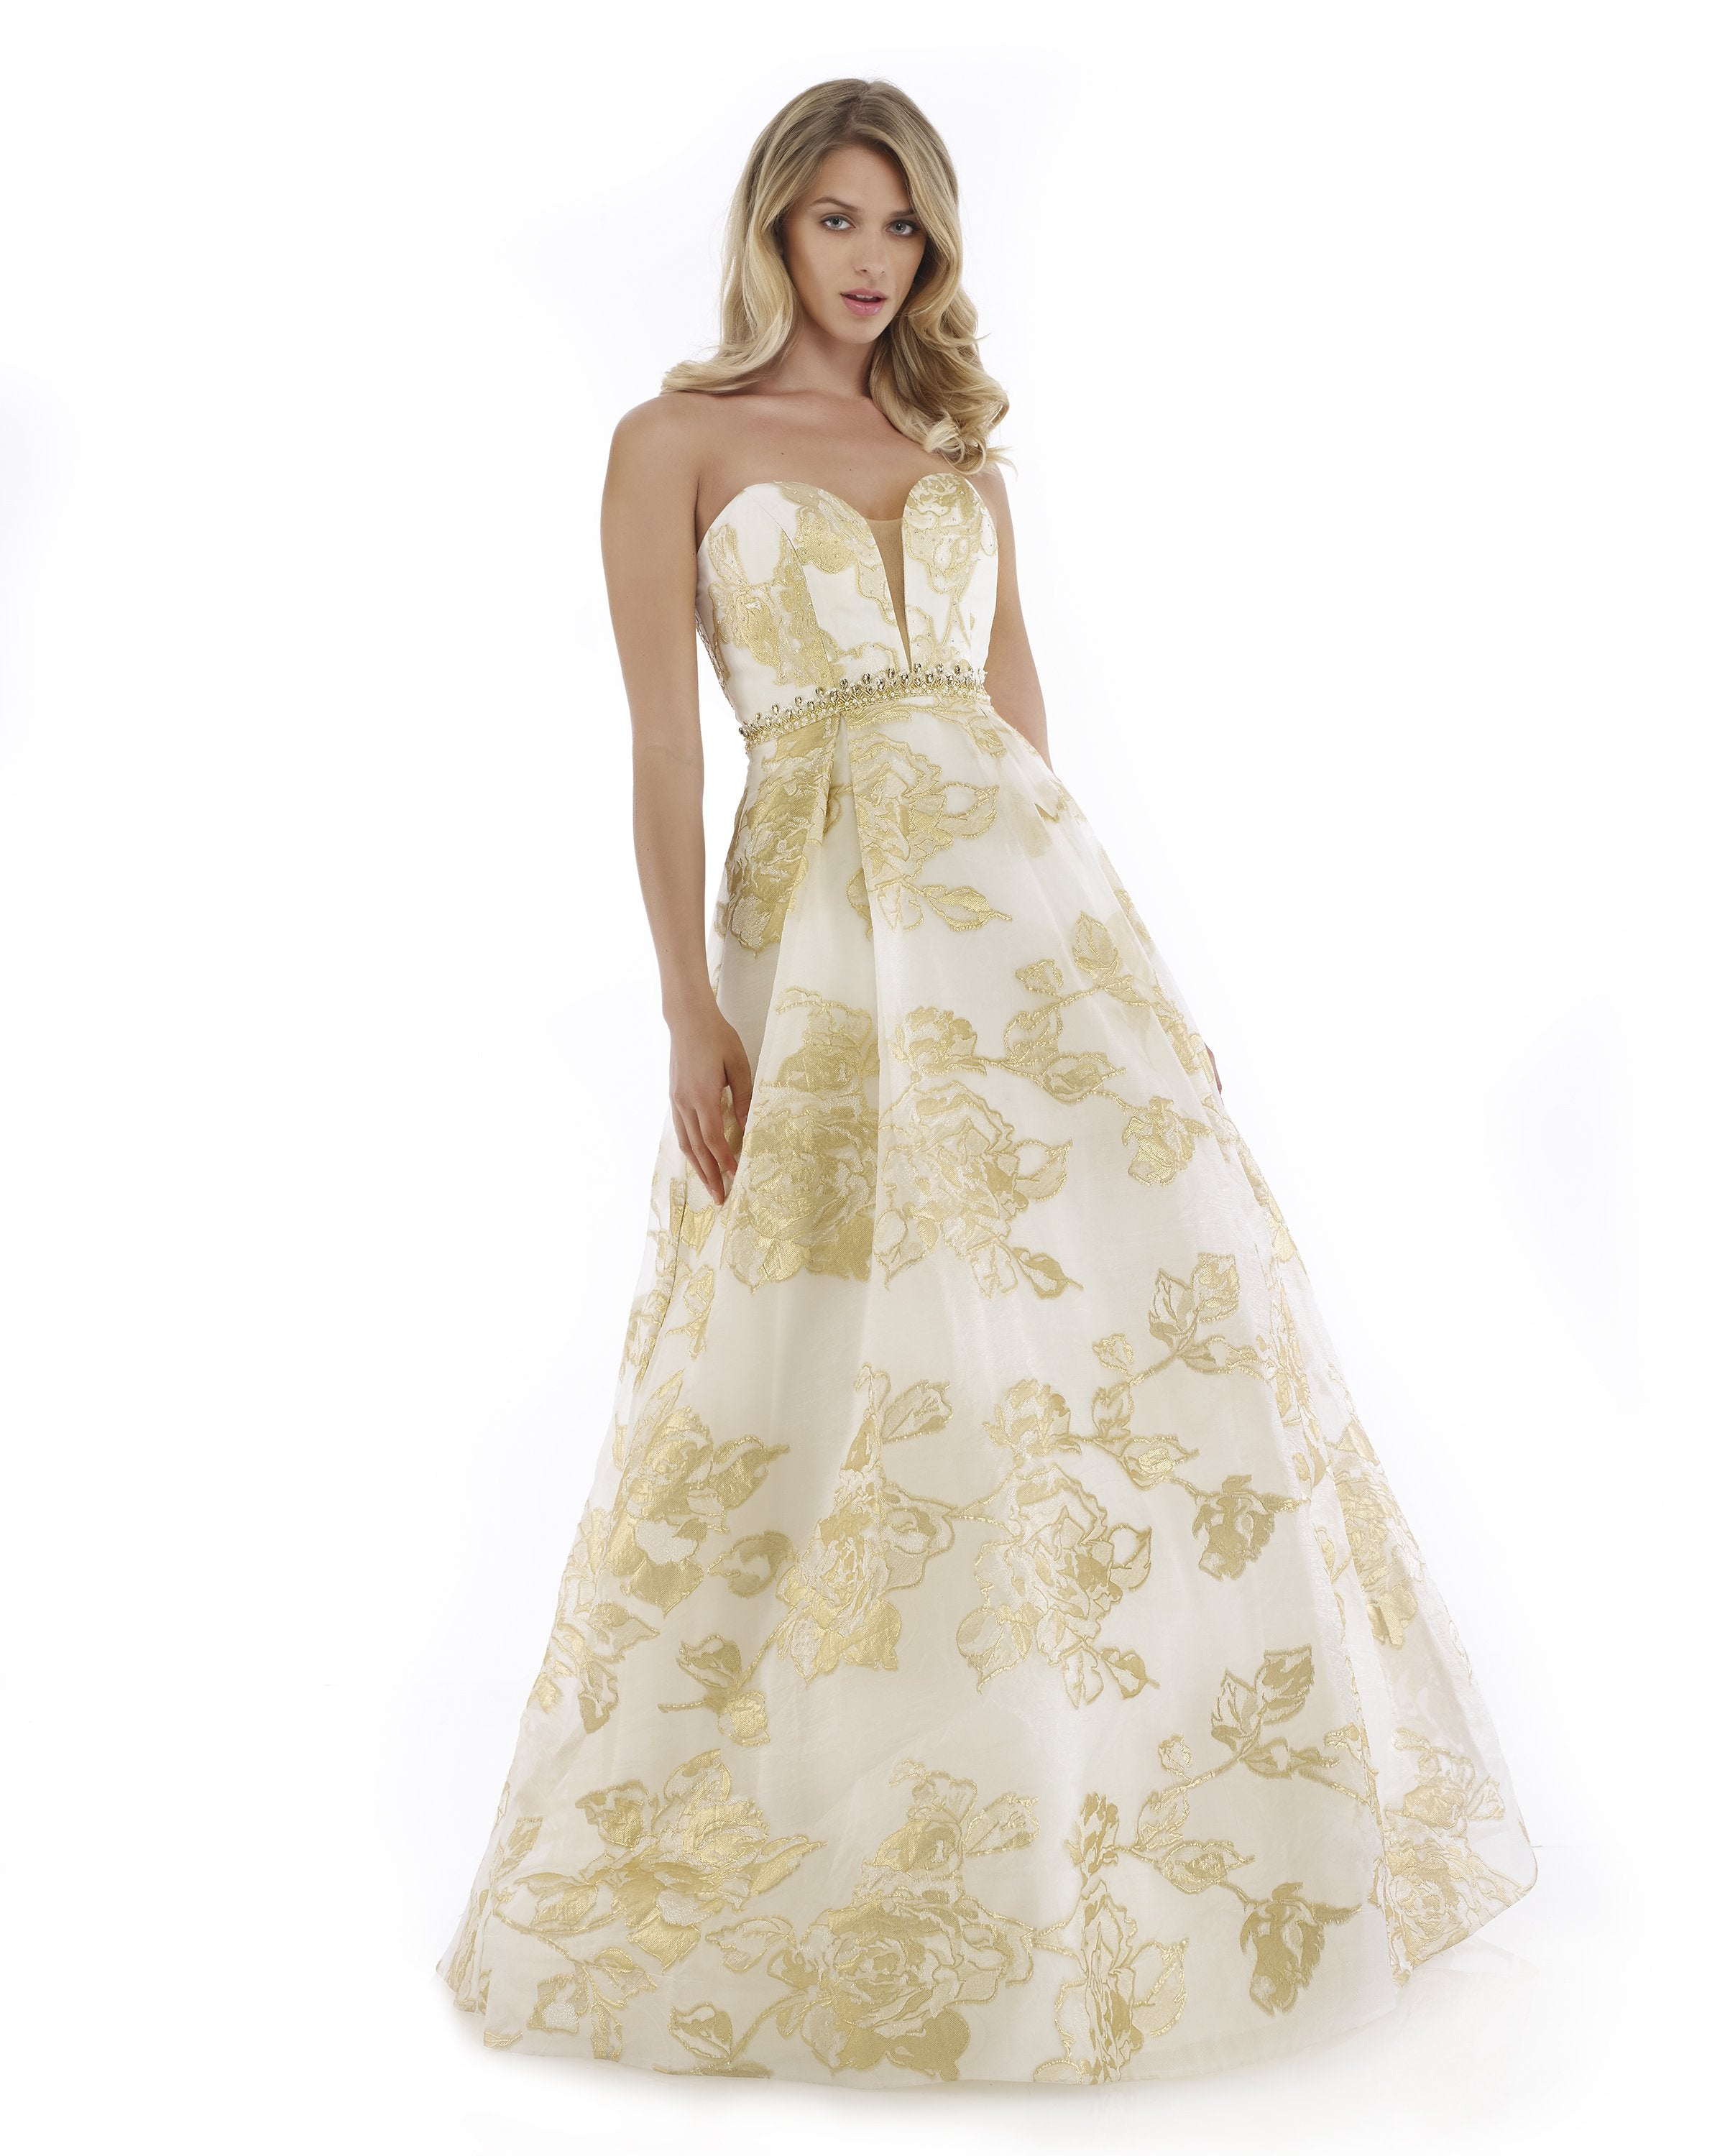 Morrell Maxie - 16049 Strapless Deep Sweetheart Brocade A-line Dress in White and Gold